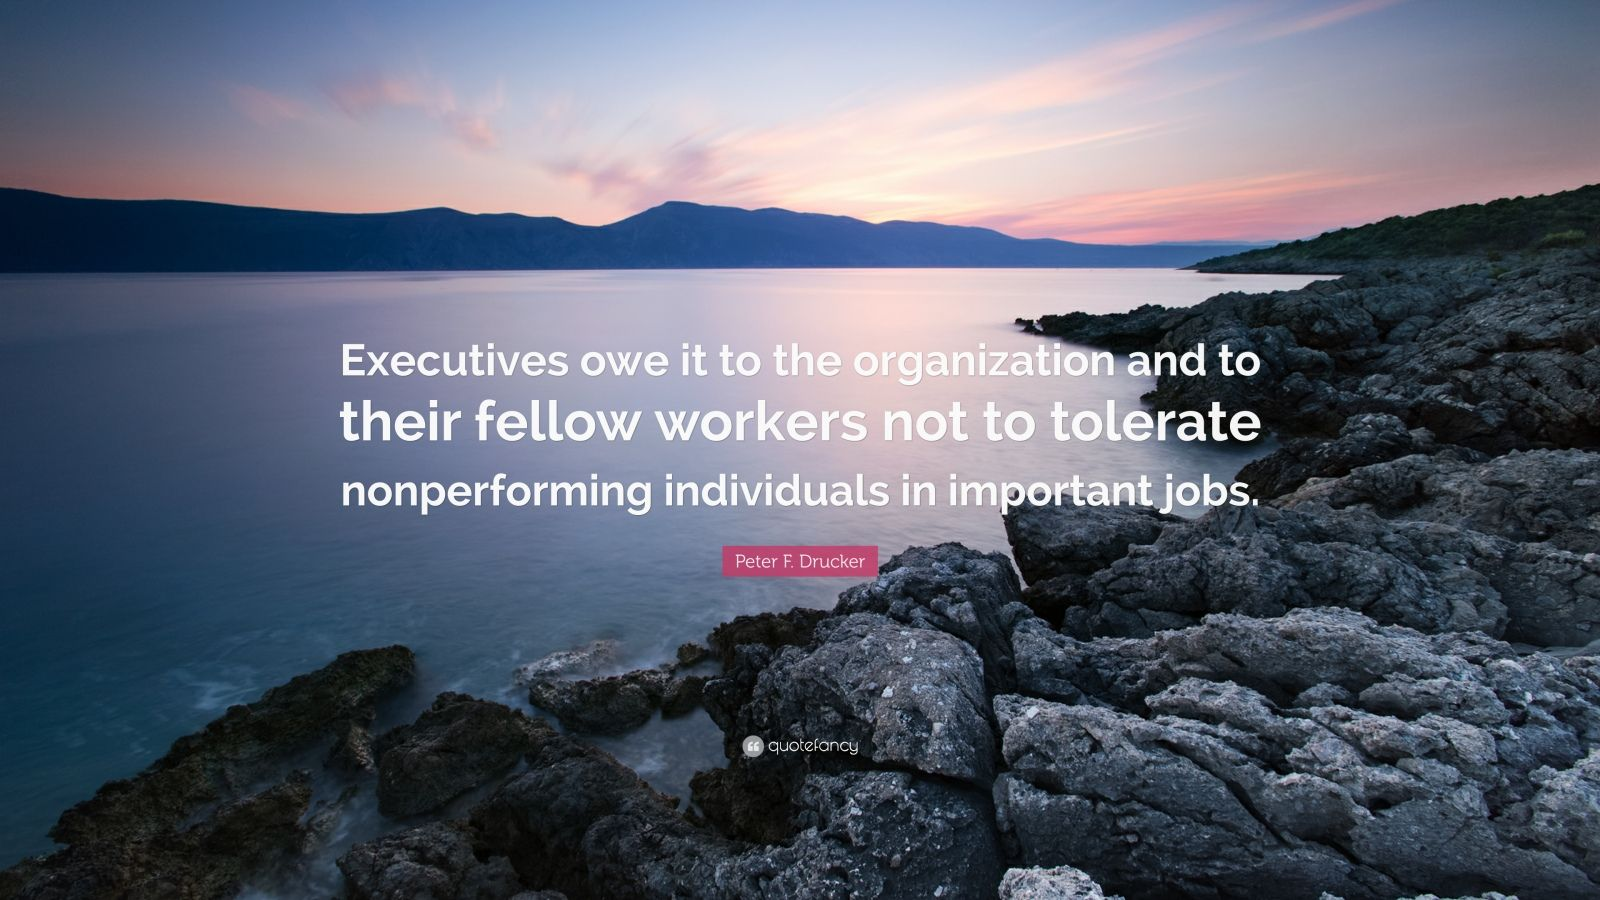 """Peter F. Drucker Quote: """"Executives owe it to the organization and to their fellow workers not to tolerate nonperforming individuals in important jobs."""""""